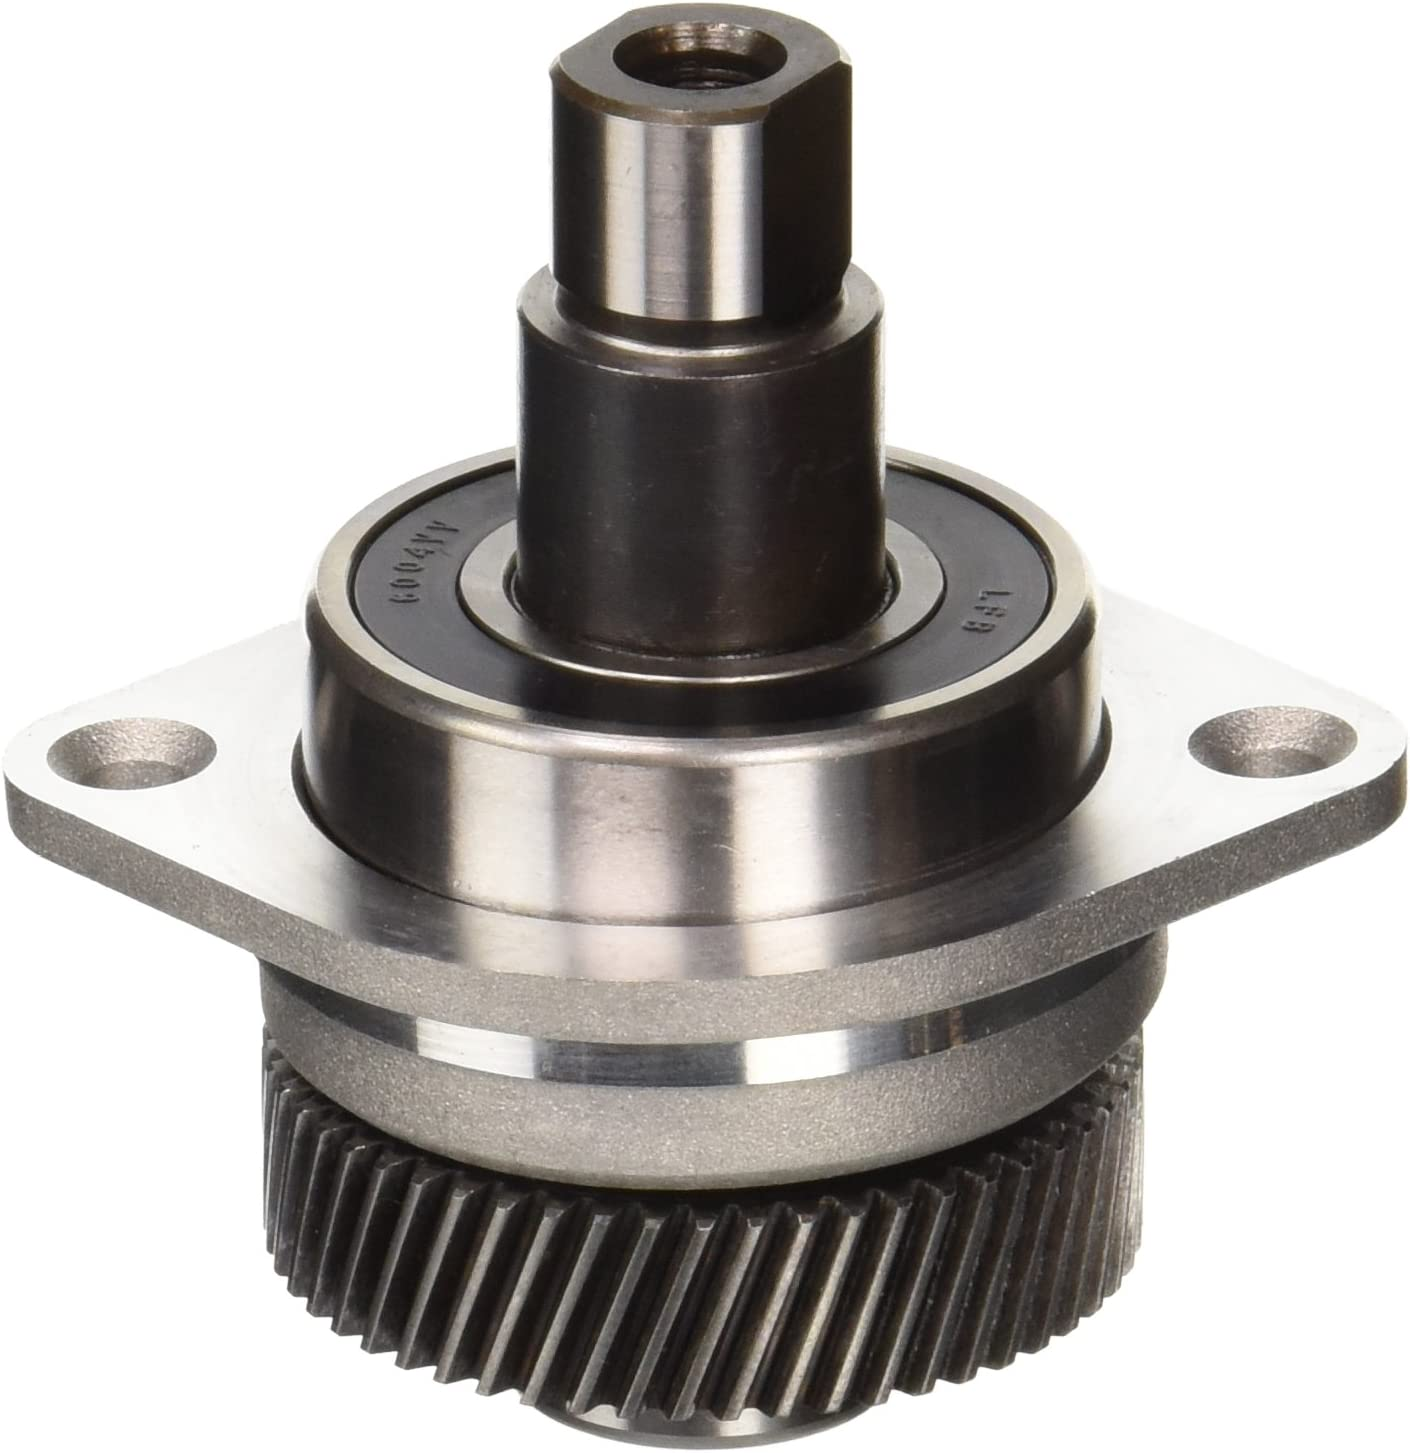 Hitachi Max 85% OFF 998837 Spindle safety Assembley Replacement C8FB2 Part